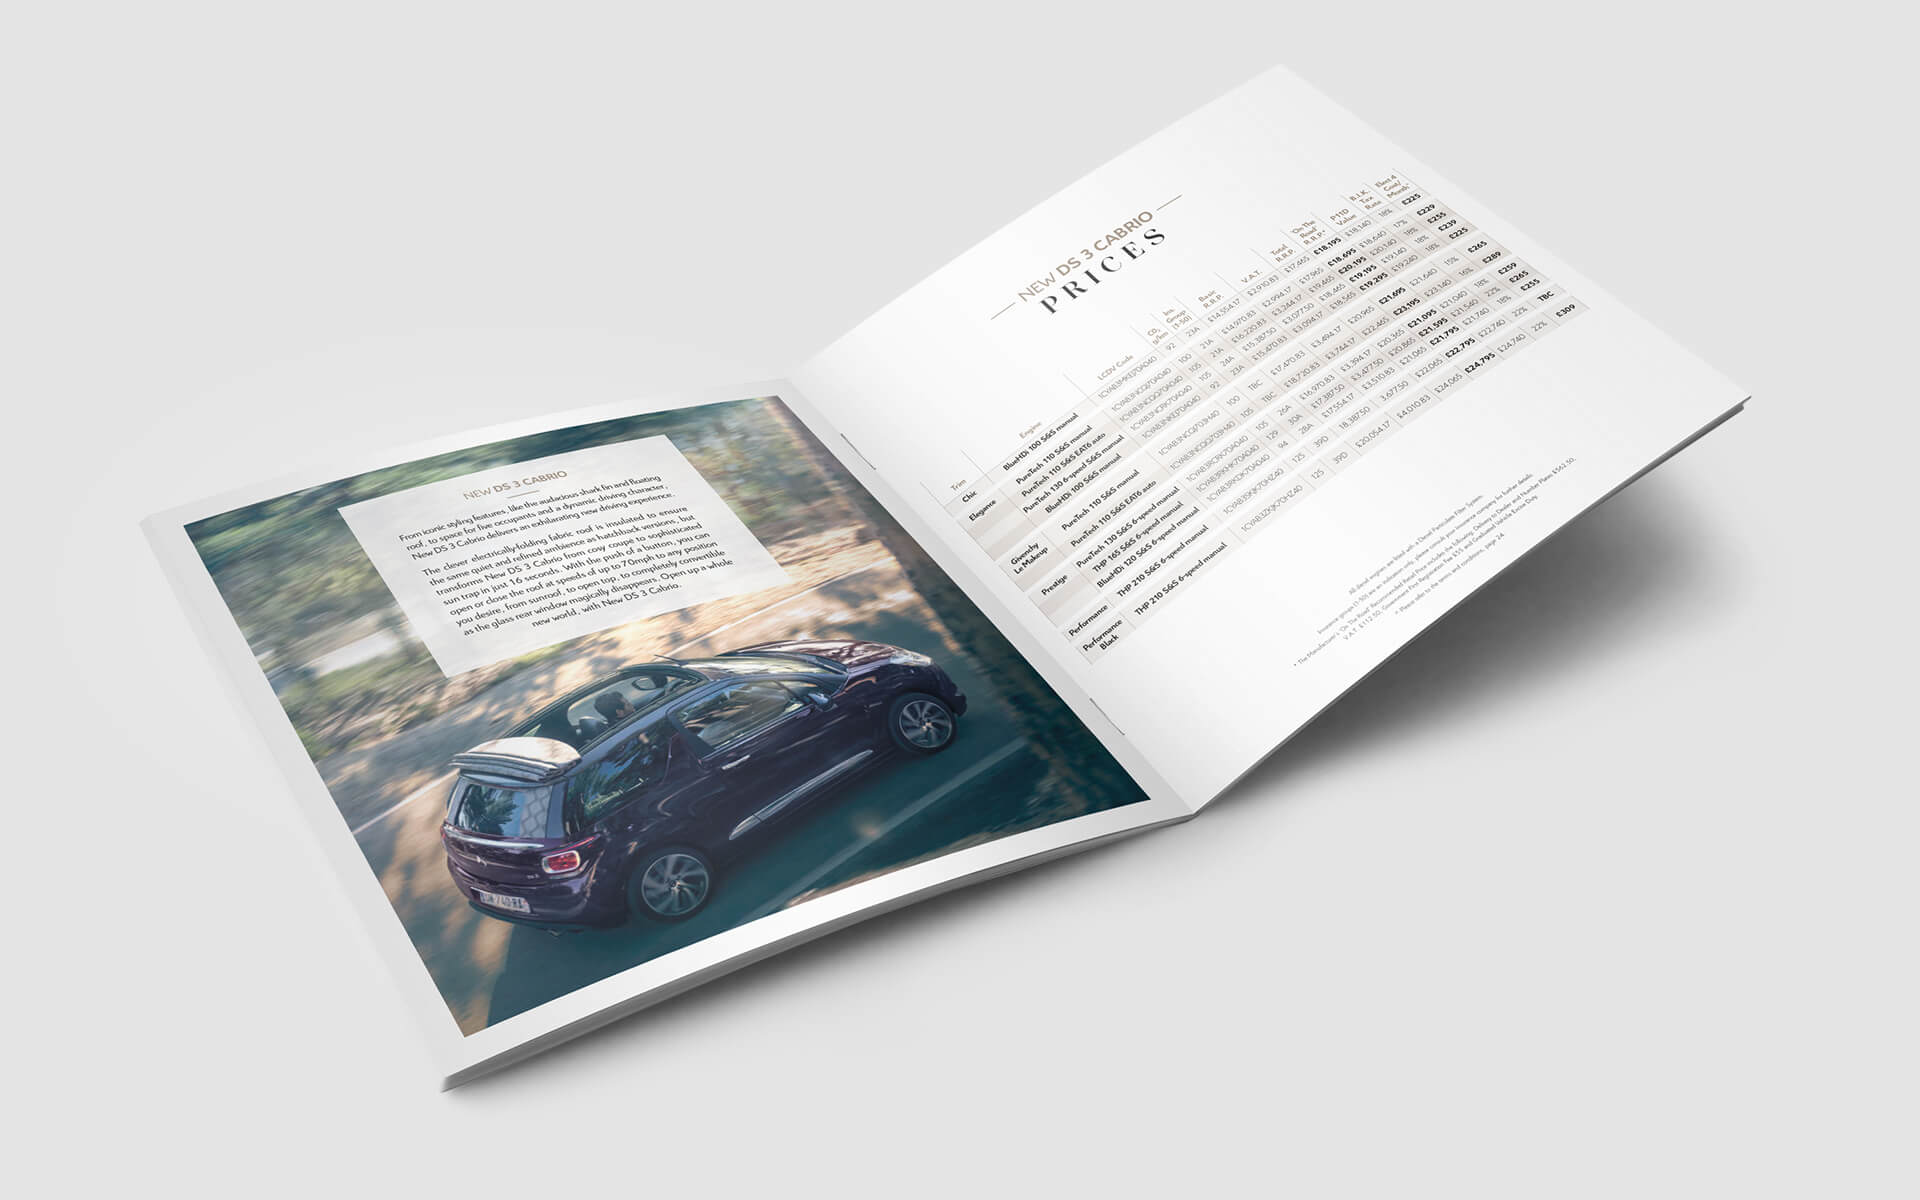 DS 3 cabrio Price and Spec Guide